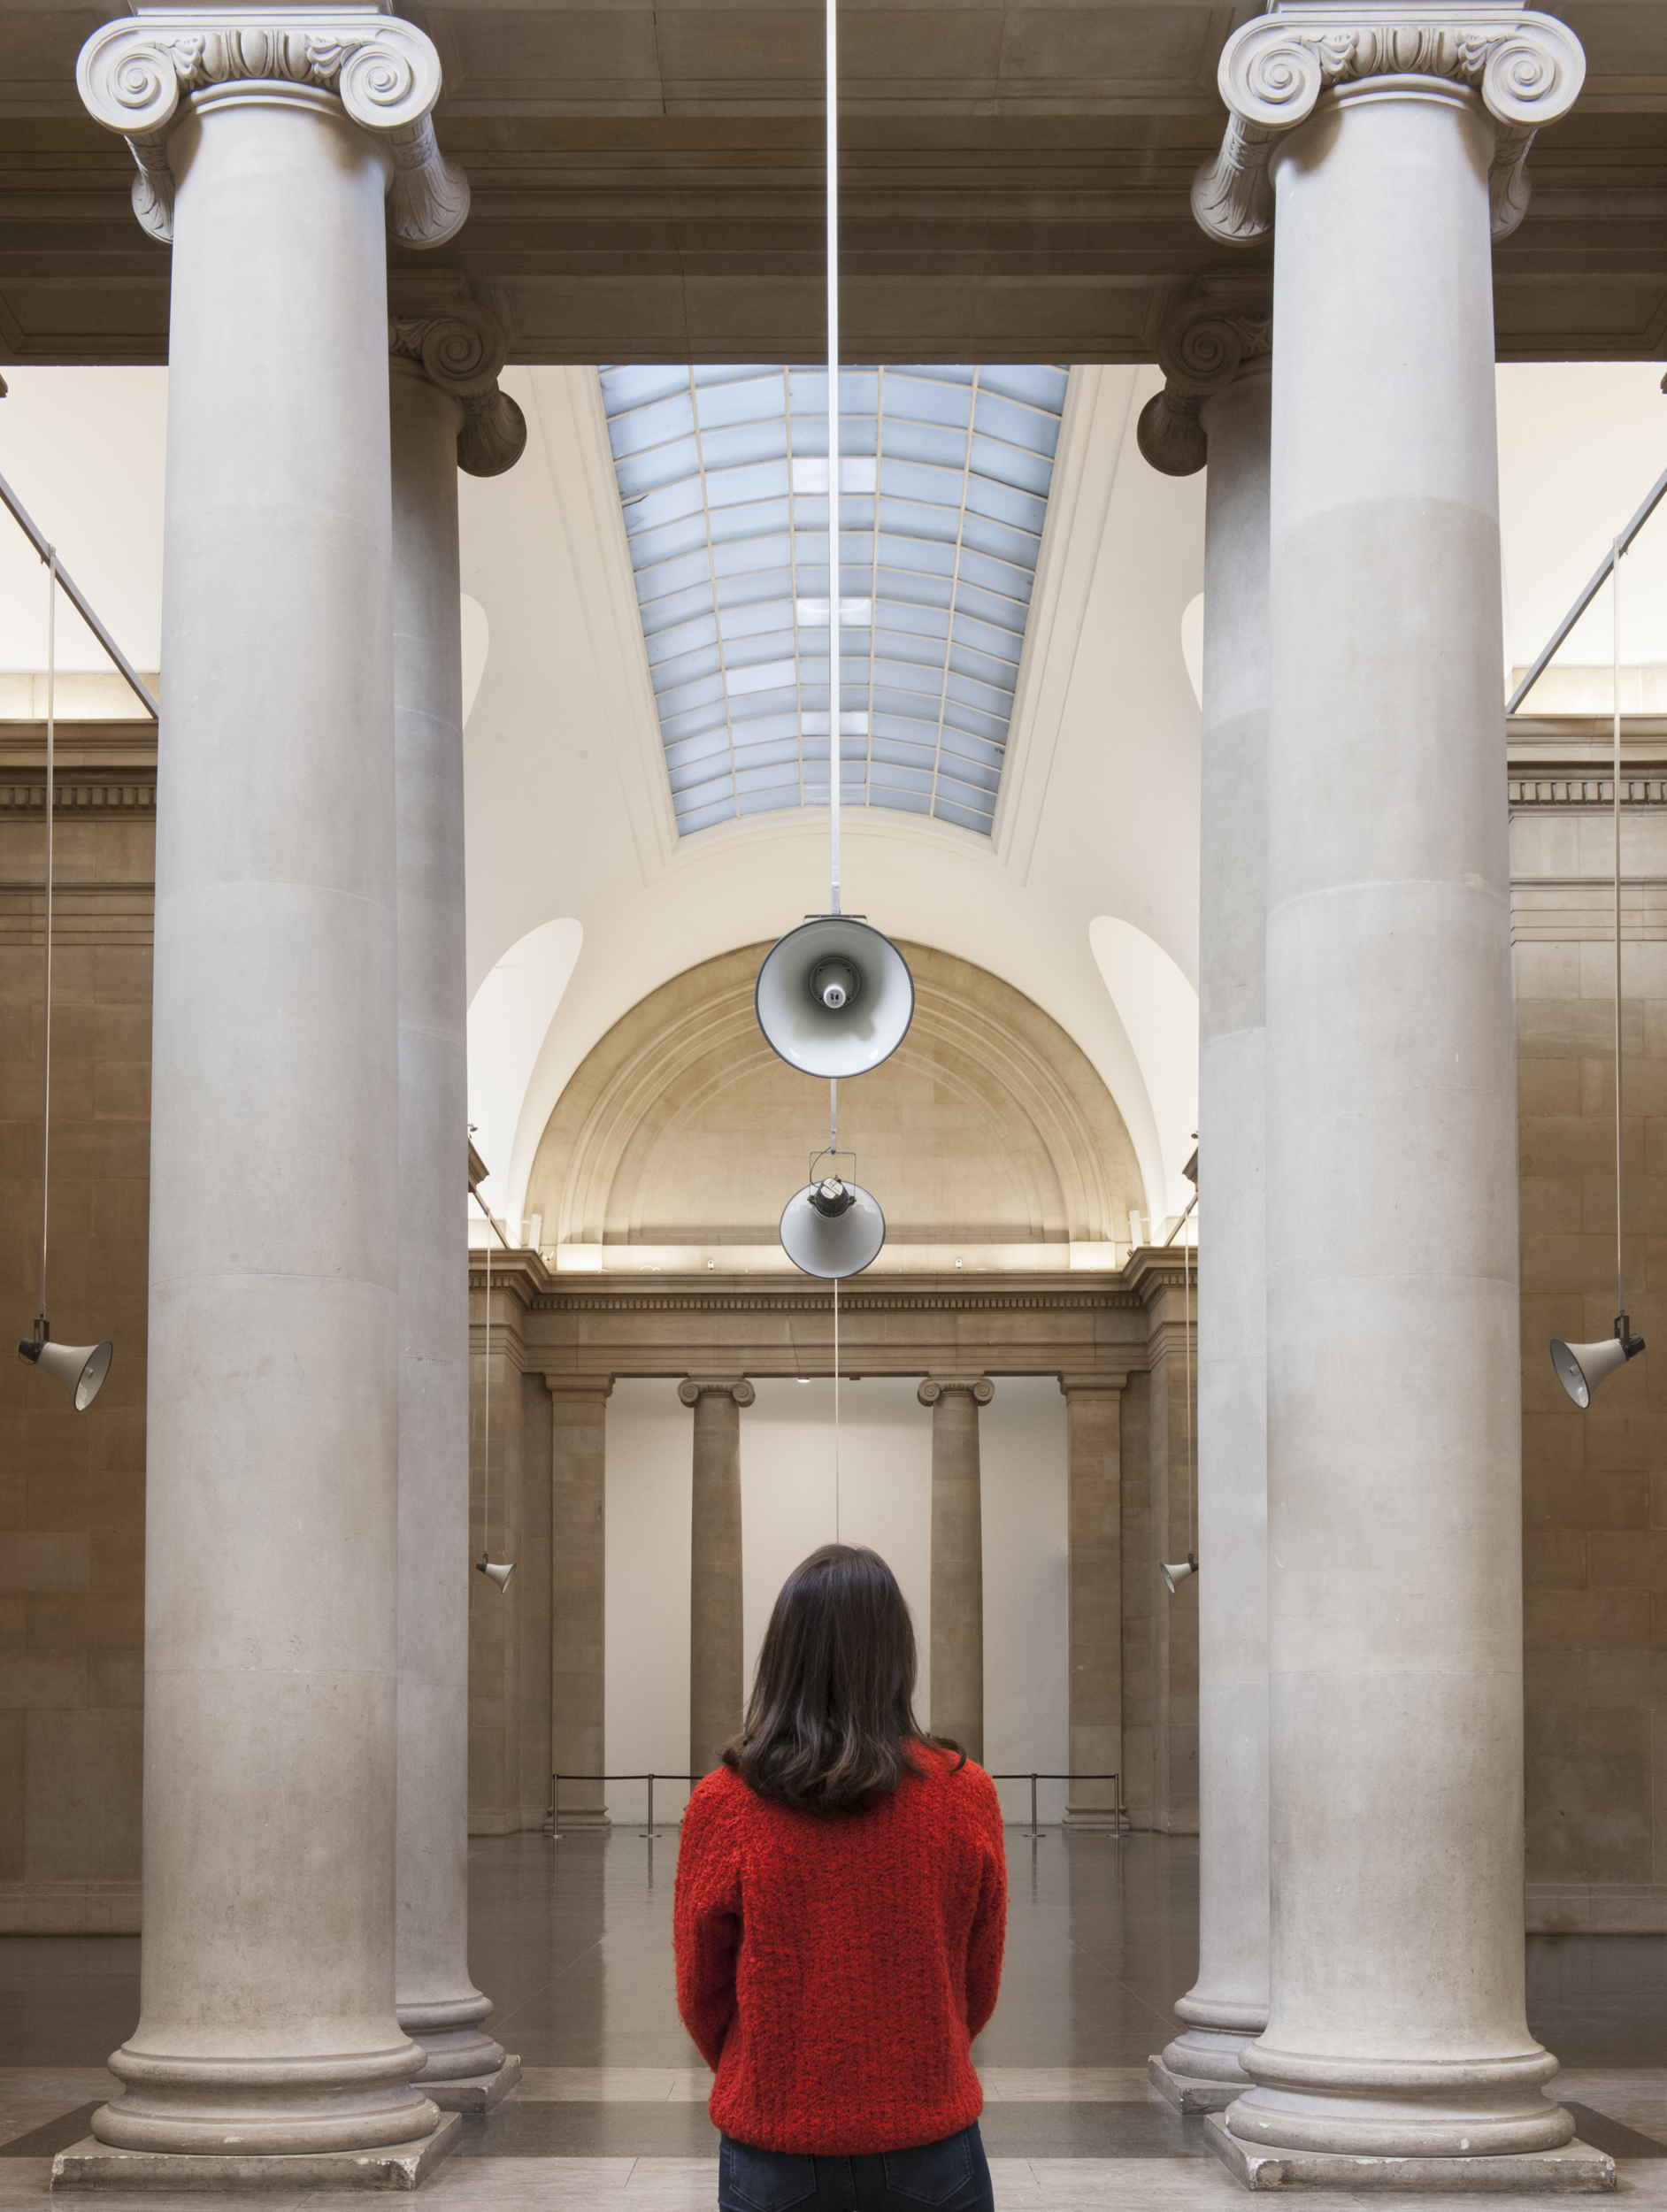 Installation views of War Damaged Musical Instruments by Susan Philipsz at Tate Britain